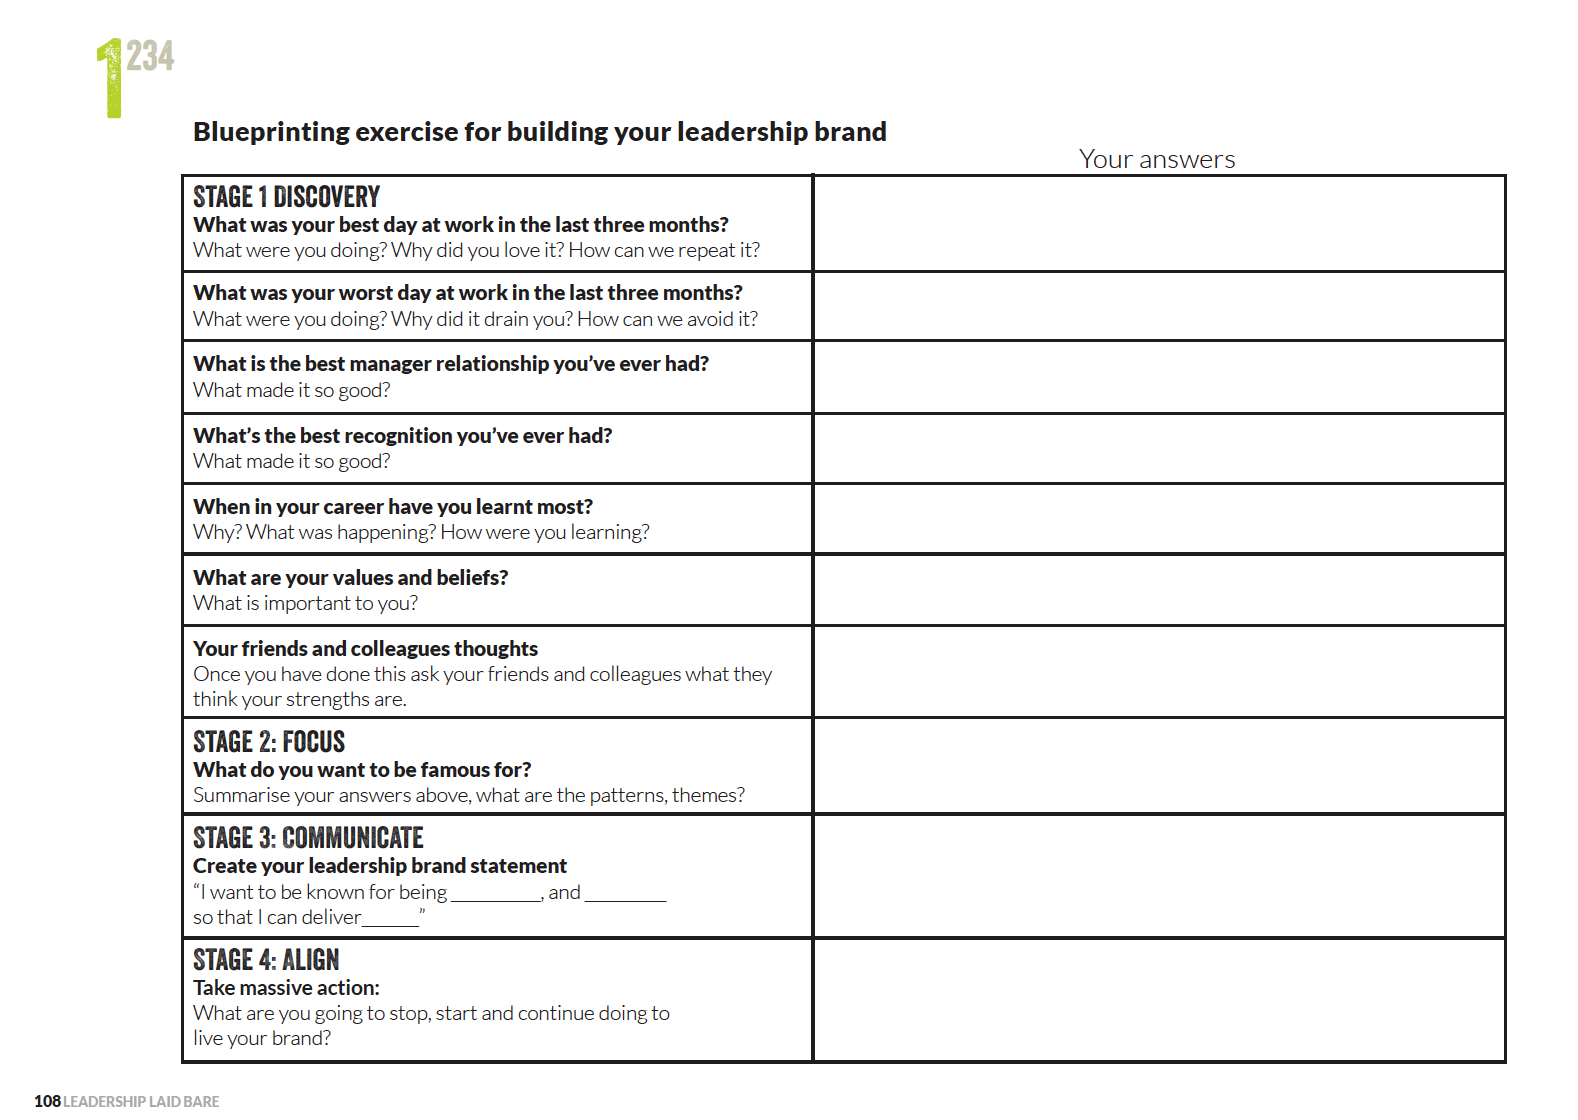 Blueprinting Exercise for Building Your Leadership Brand